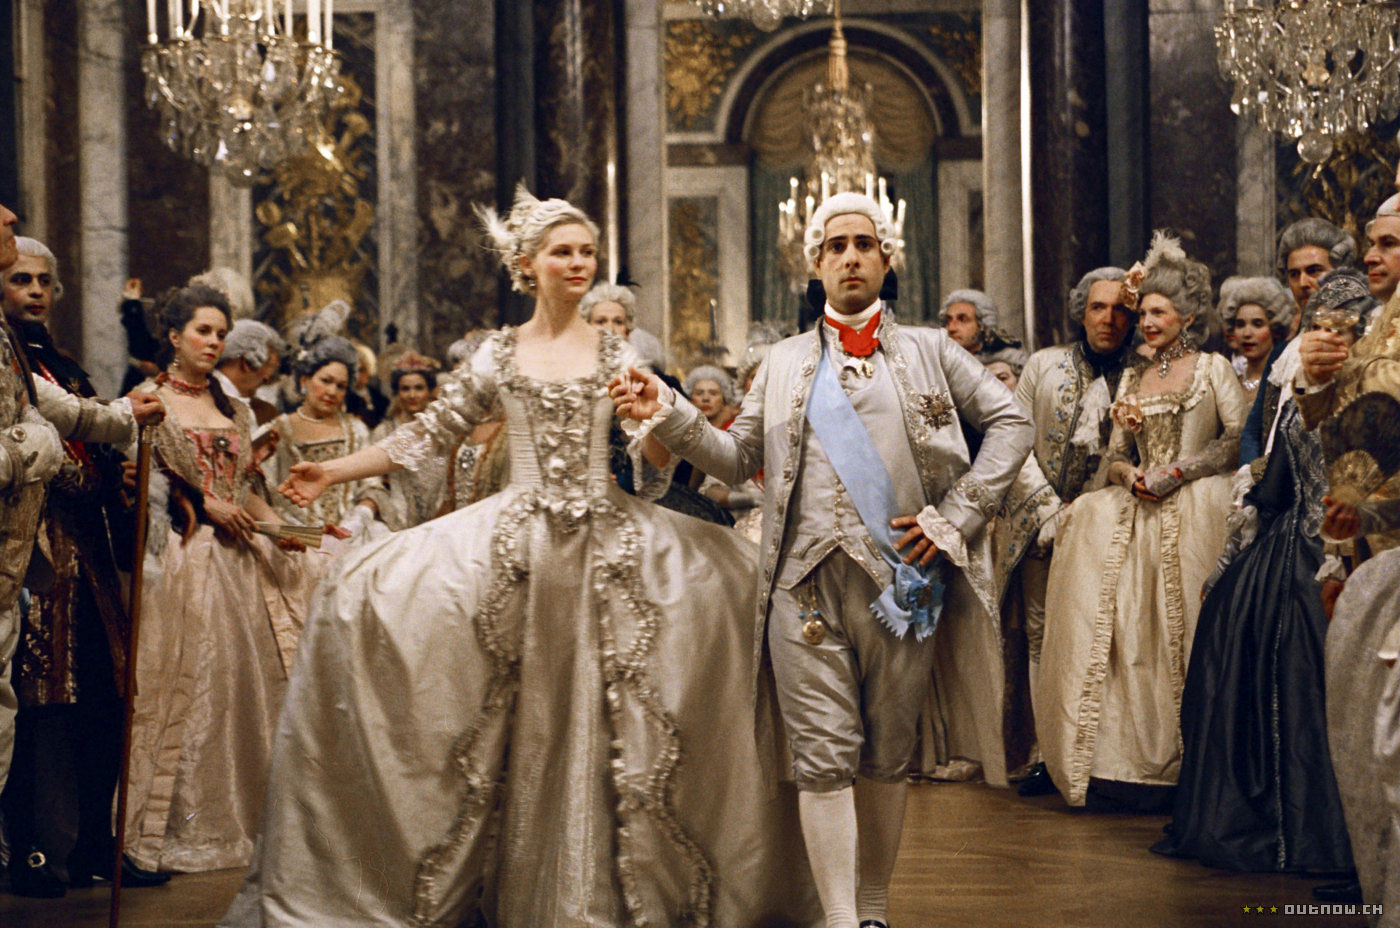 marie-antoinette-wedding-dance.jpg